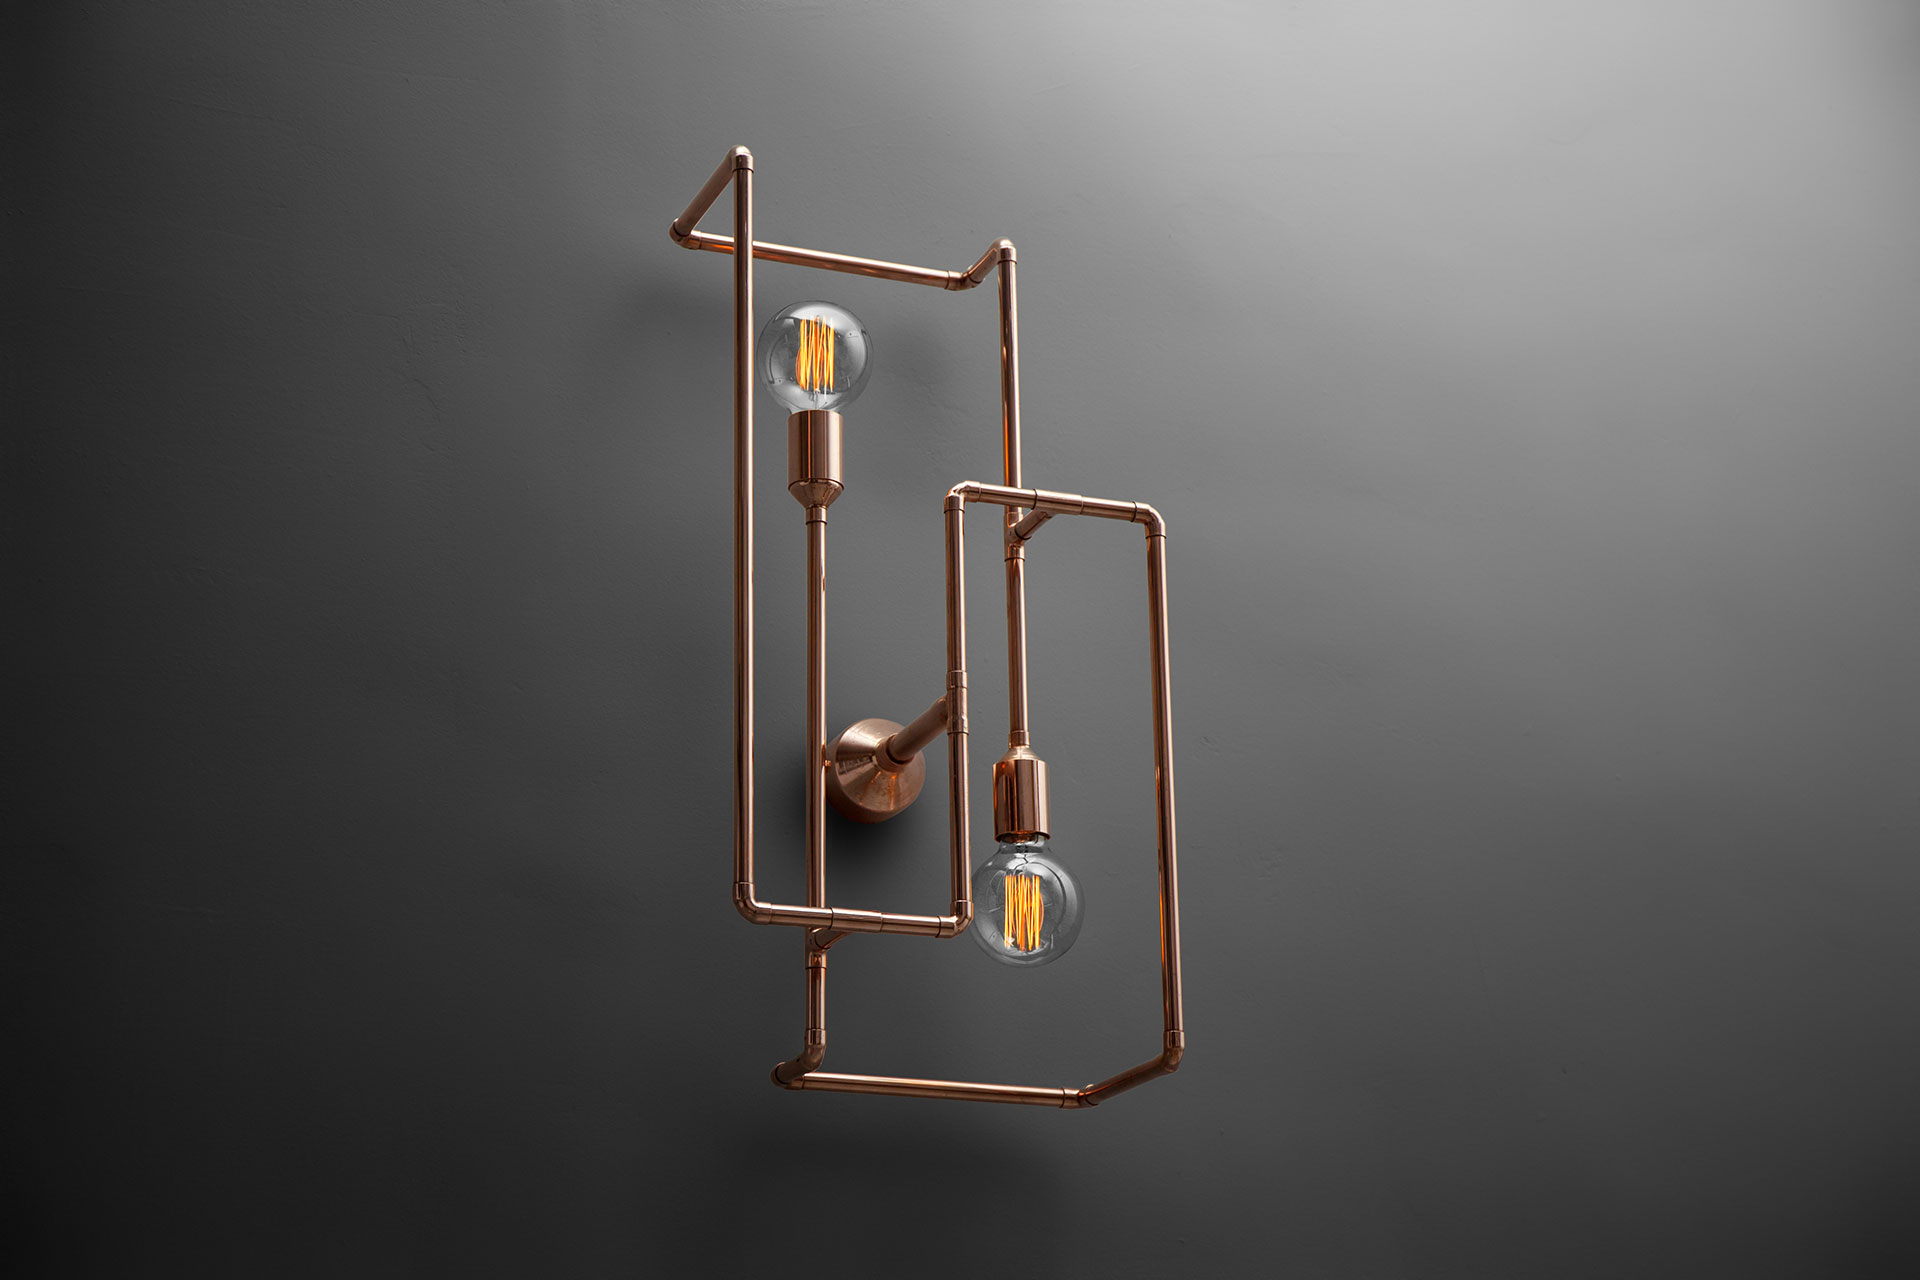 Large industrial design 2 lights sconce in copper or brass